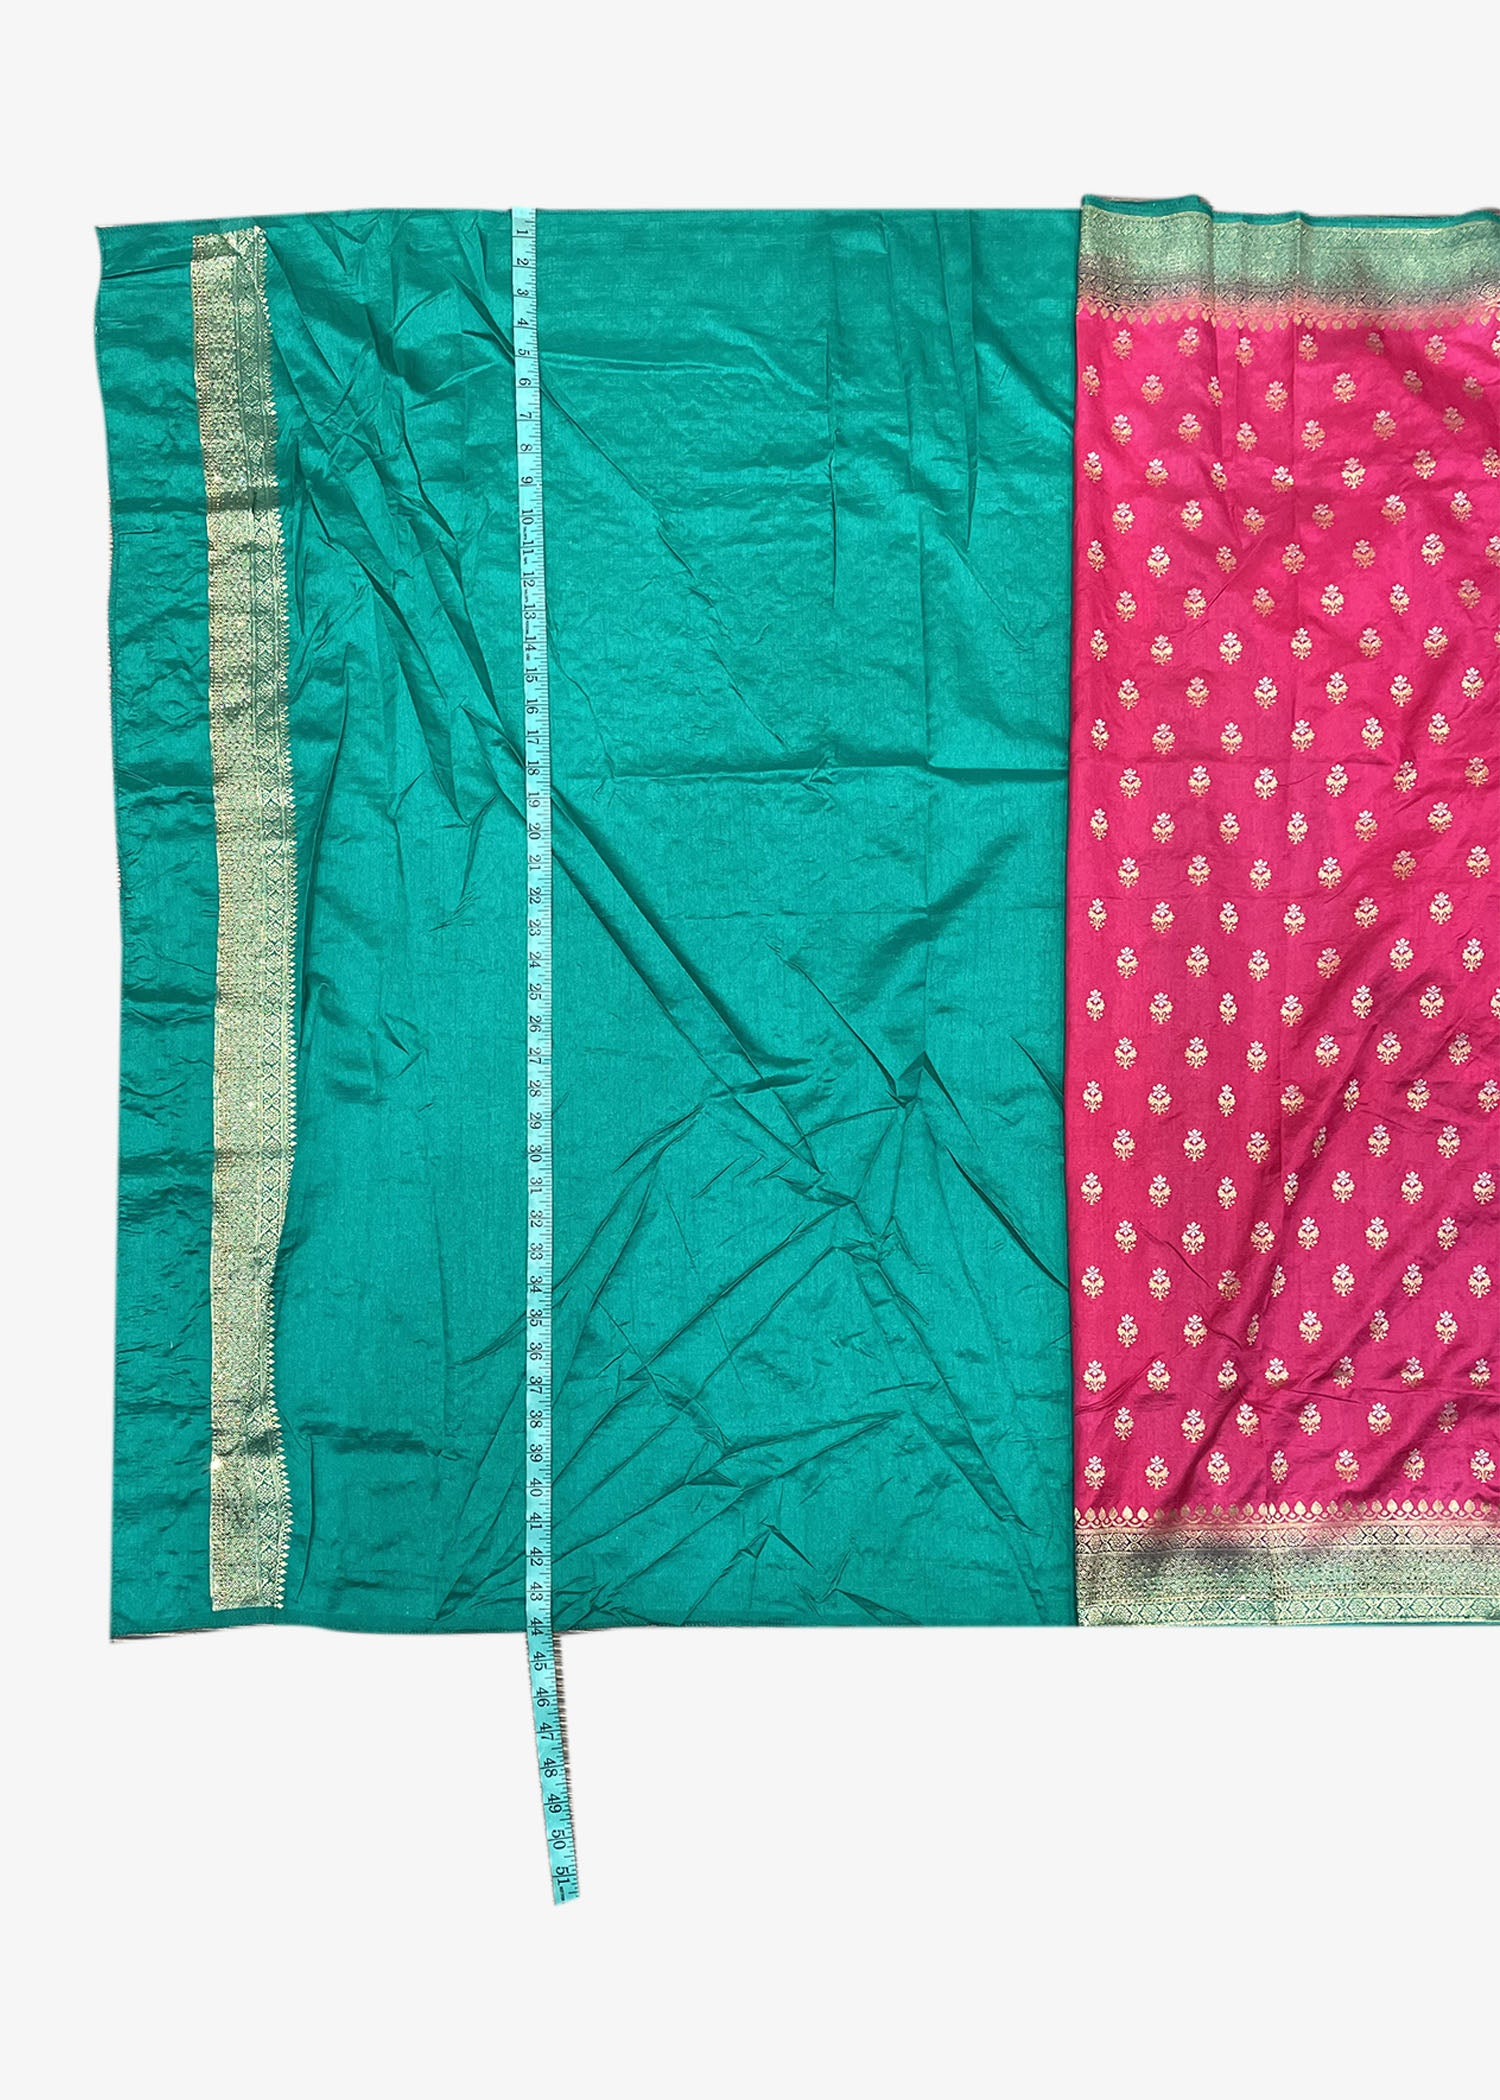 Pink Banarasi Silk Saree With Gold Zari Weaved Buttis With Teal Shaded Pallu And Border